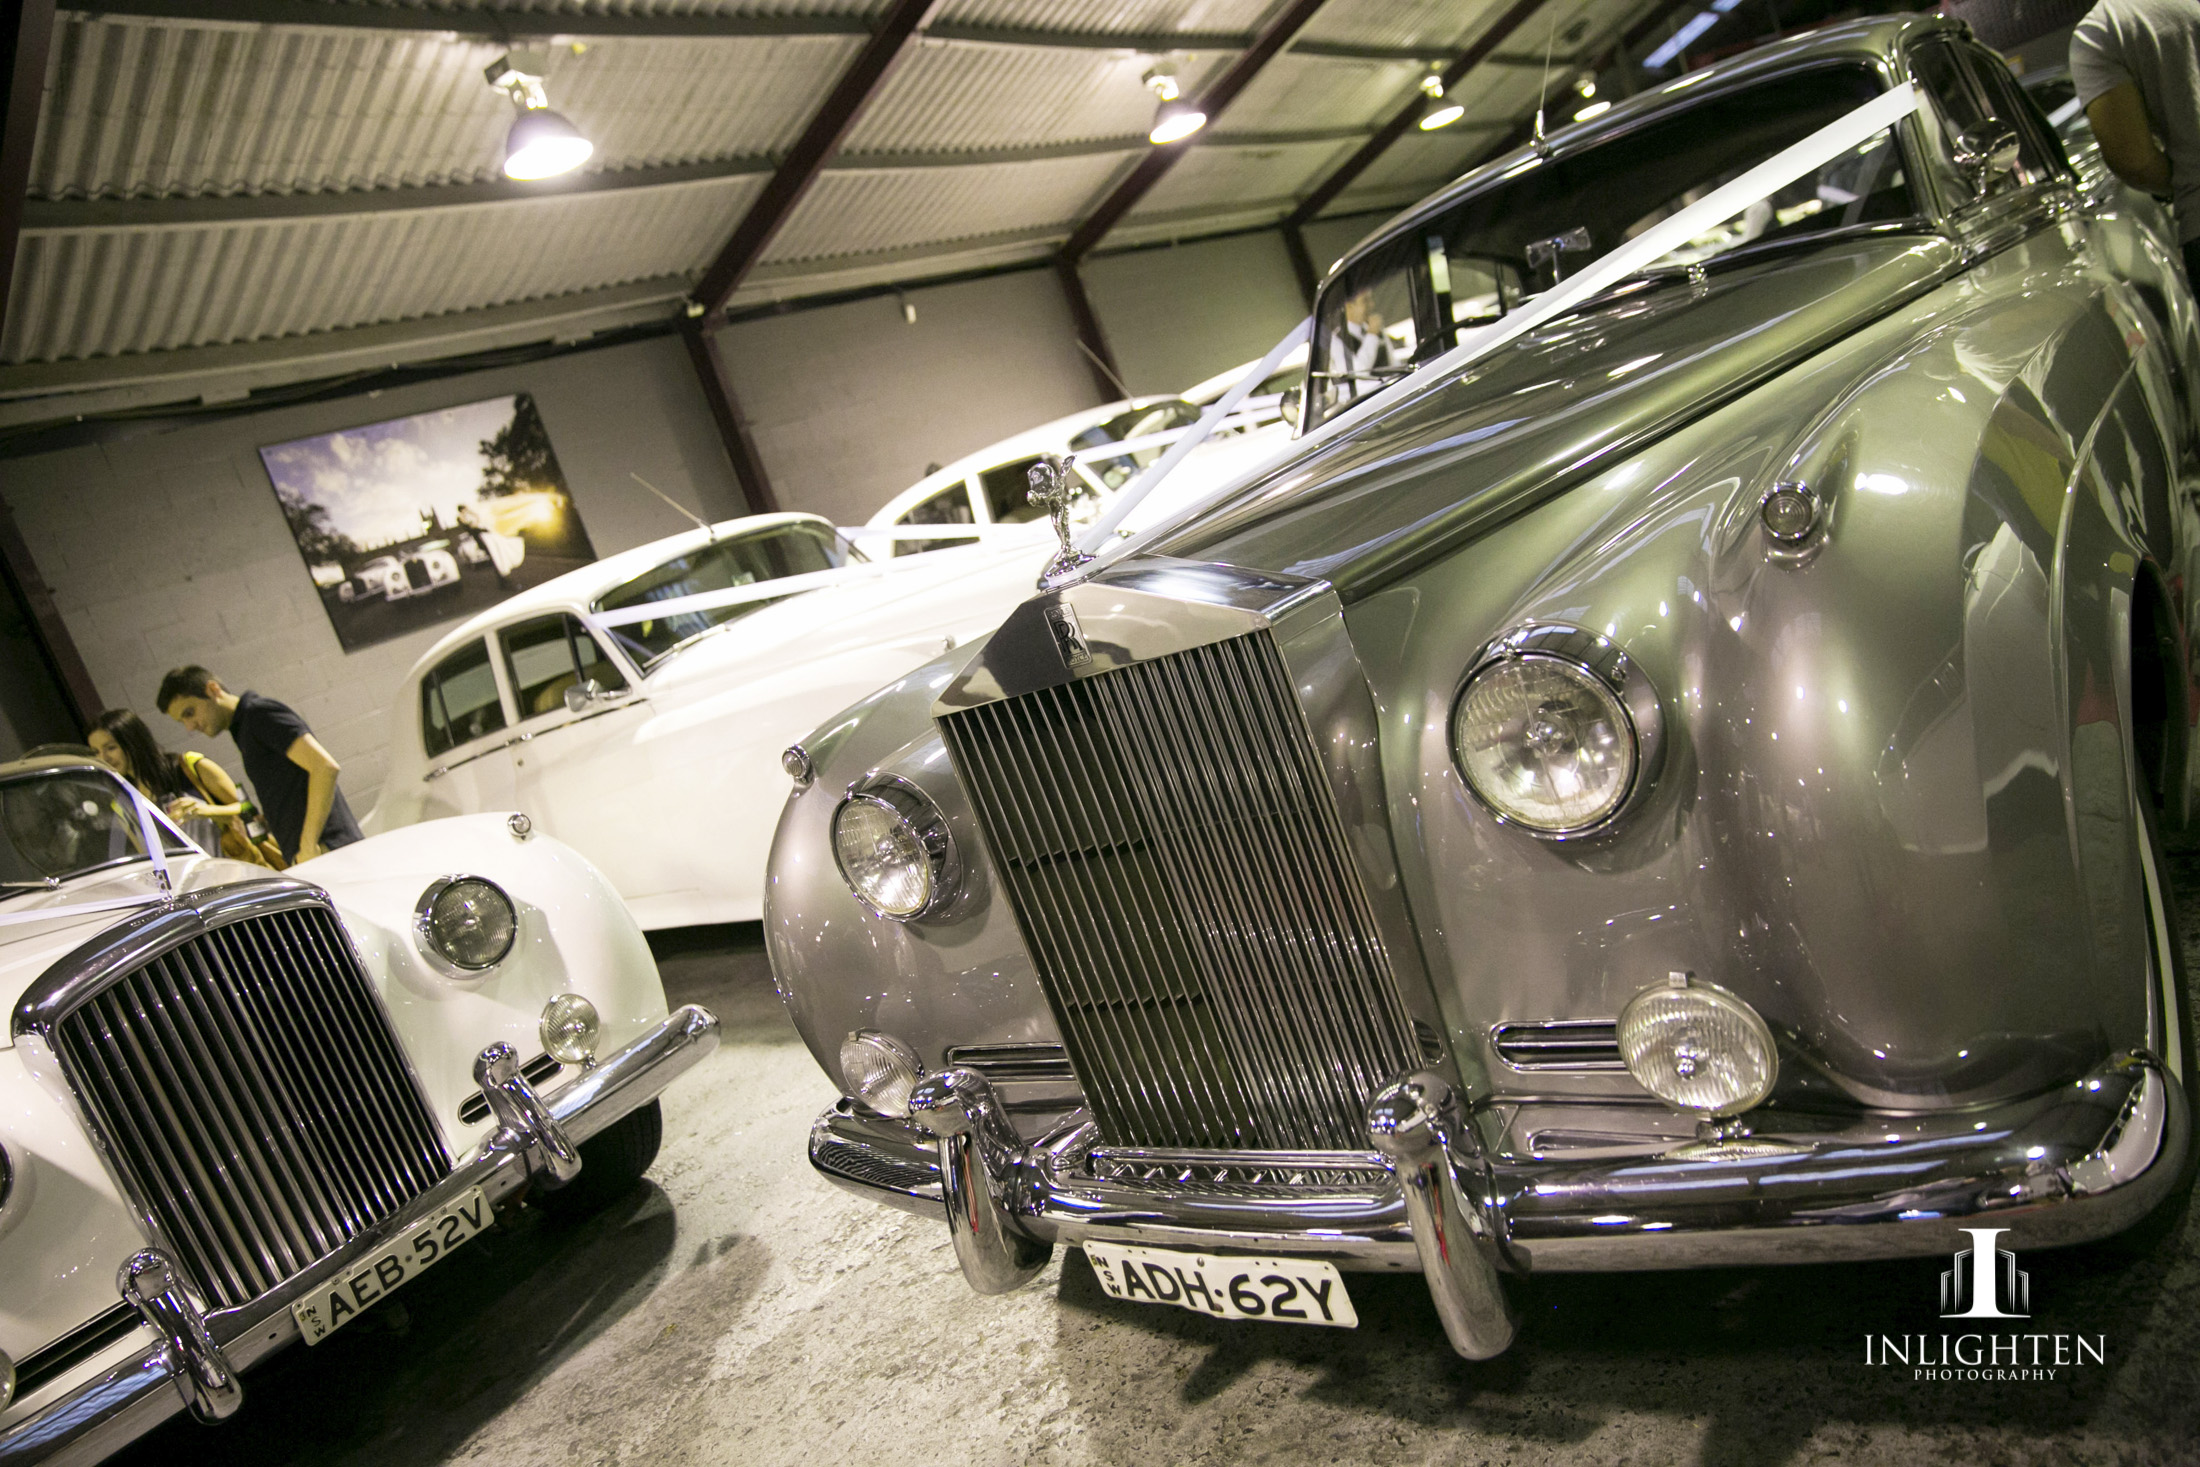 Over 40 Rolls Royces in the showroom